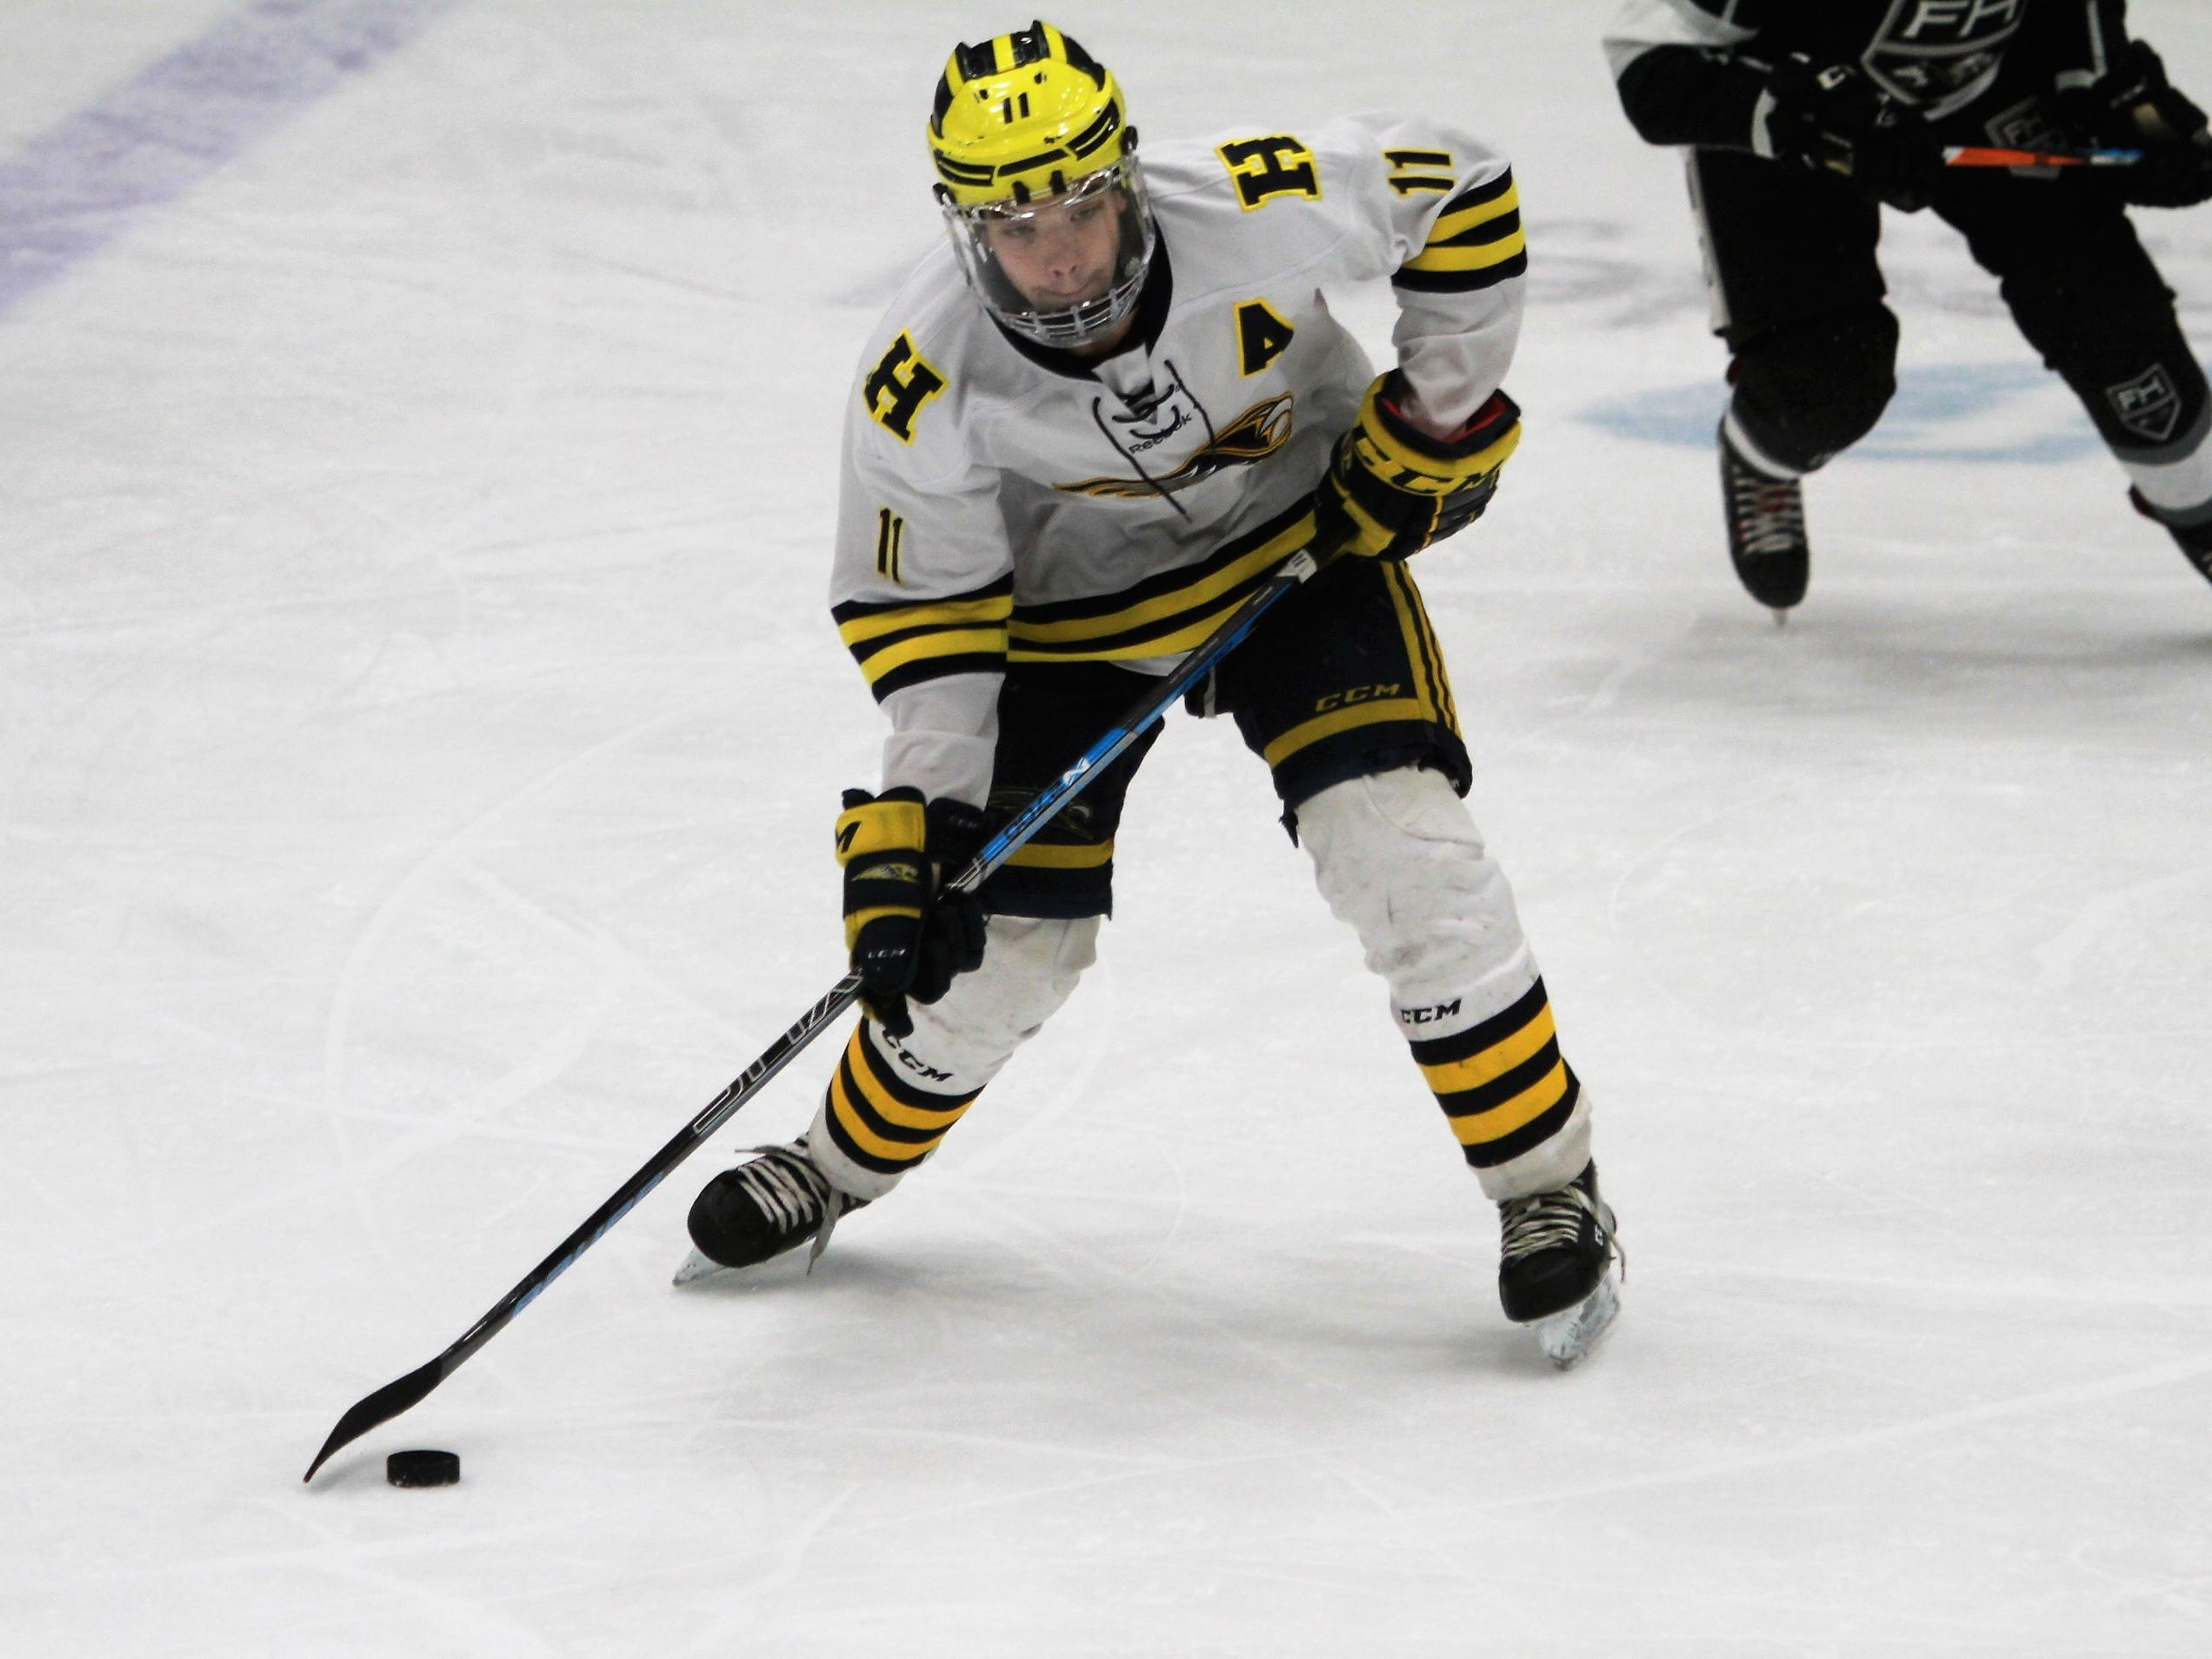 Hartland's Gabe Anderson, who scored the game's last goal, makes a pass during a 6-0 victory over Forest Hills Eastern in the state hockey quarterfinals on Tuesday, March 5, 2019.